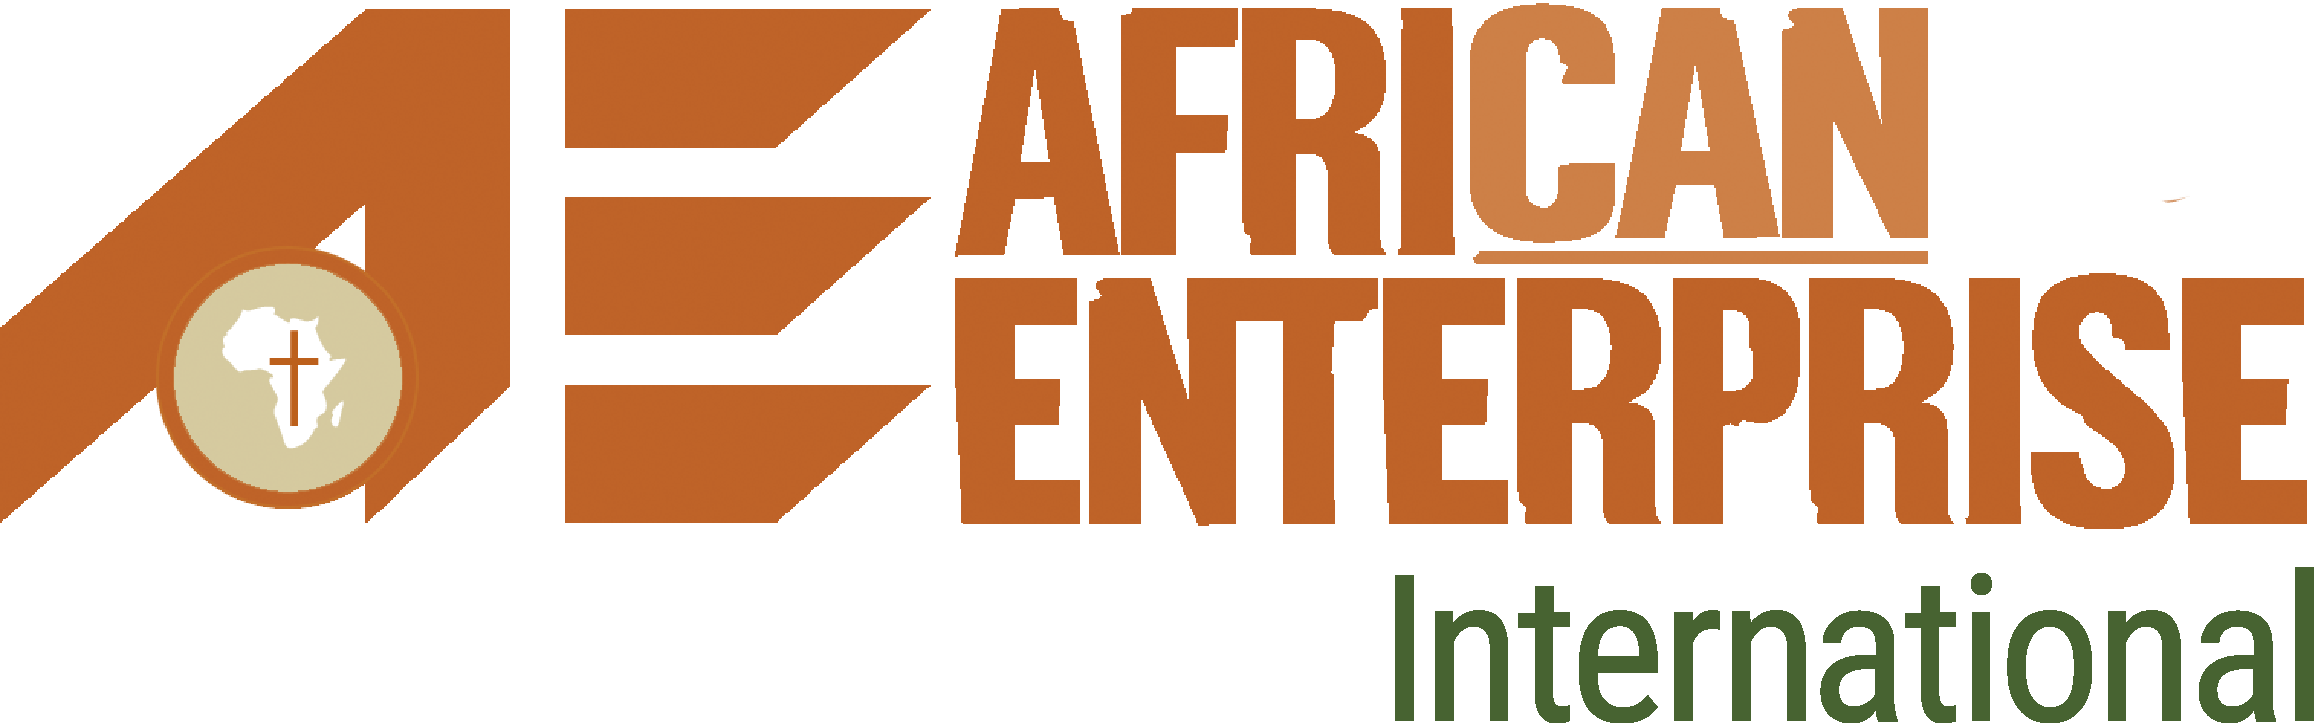 Global | African Enterprise